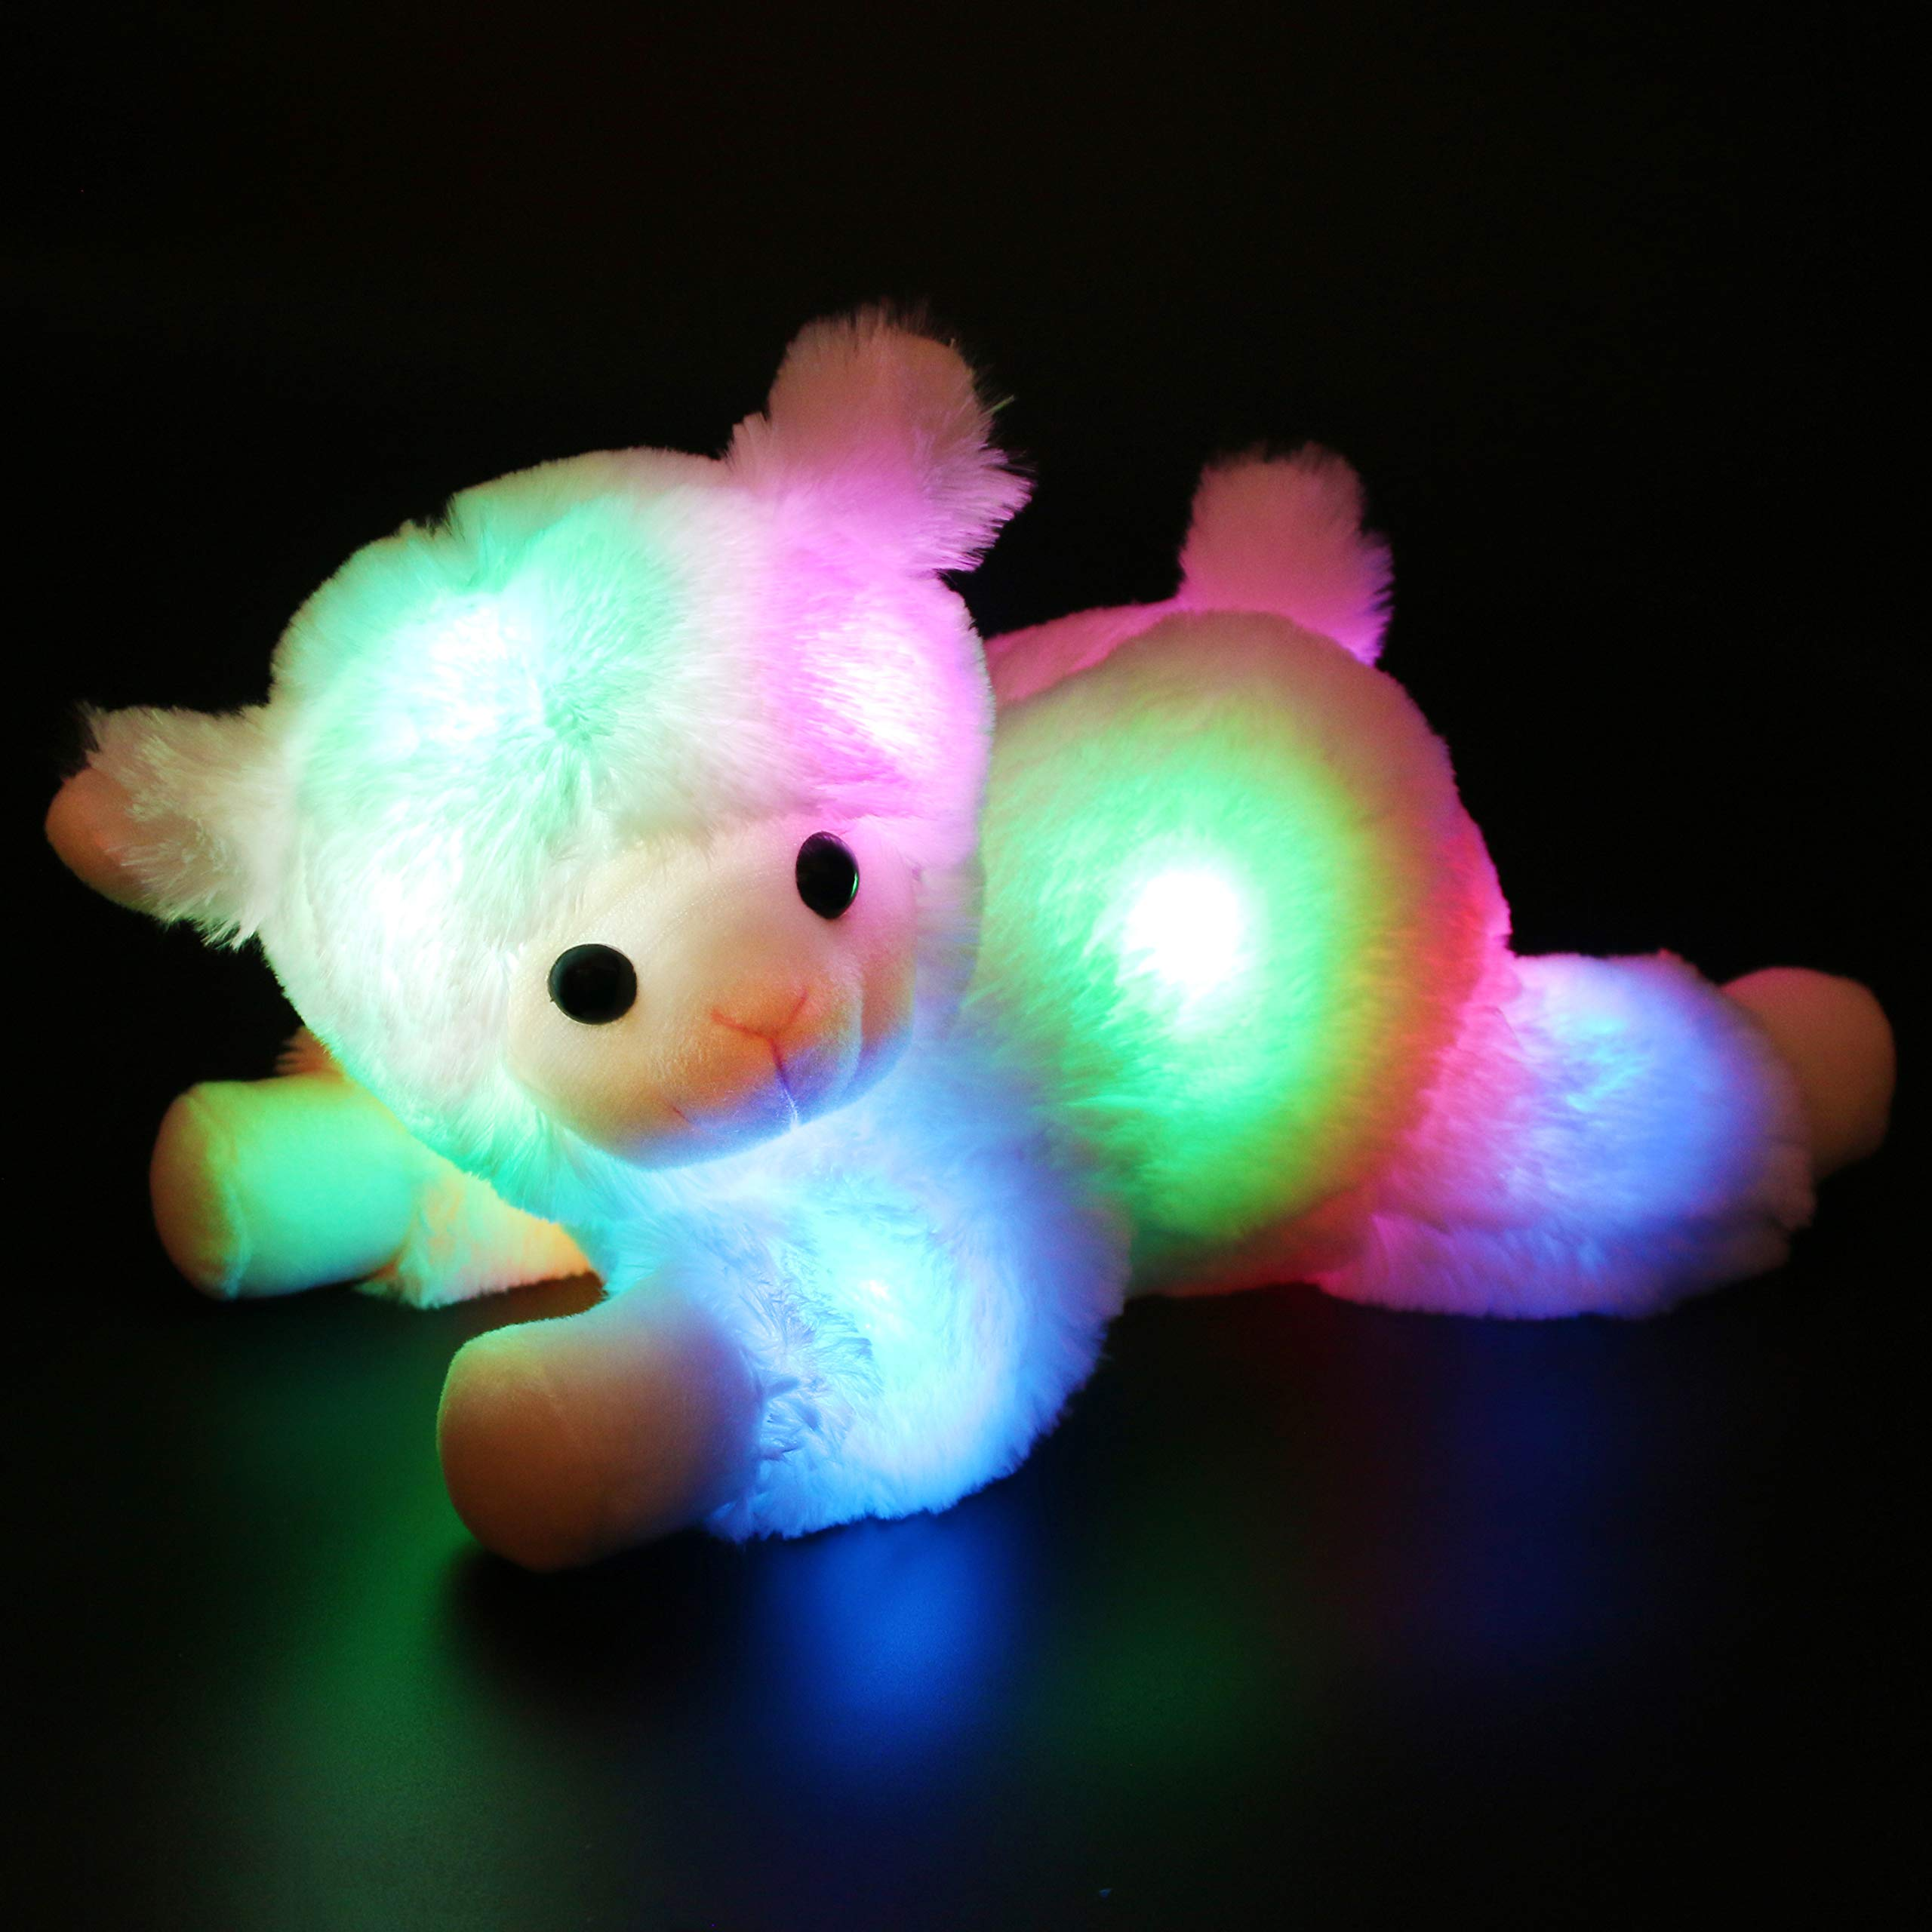 Bstaofy Light up Stuffed Lamb Plush Toy Glow Sheep Nightlight Soft Adorable Birthday for Kids Toddlers, 14.5 Inches